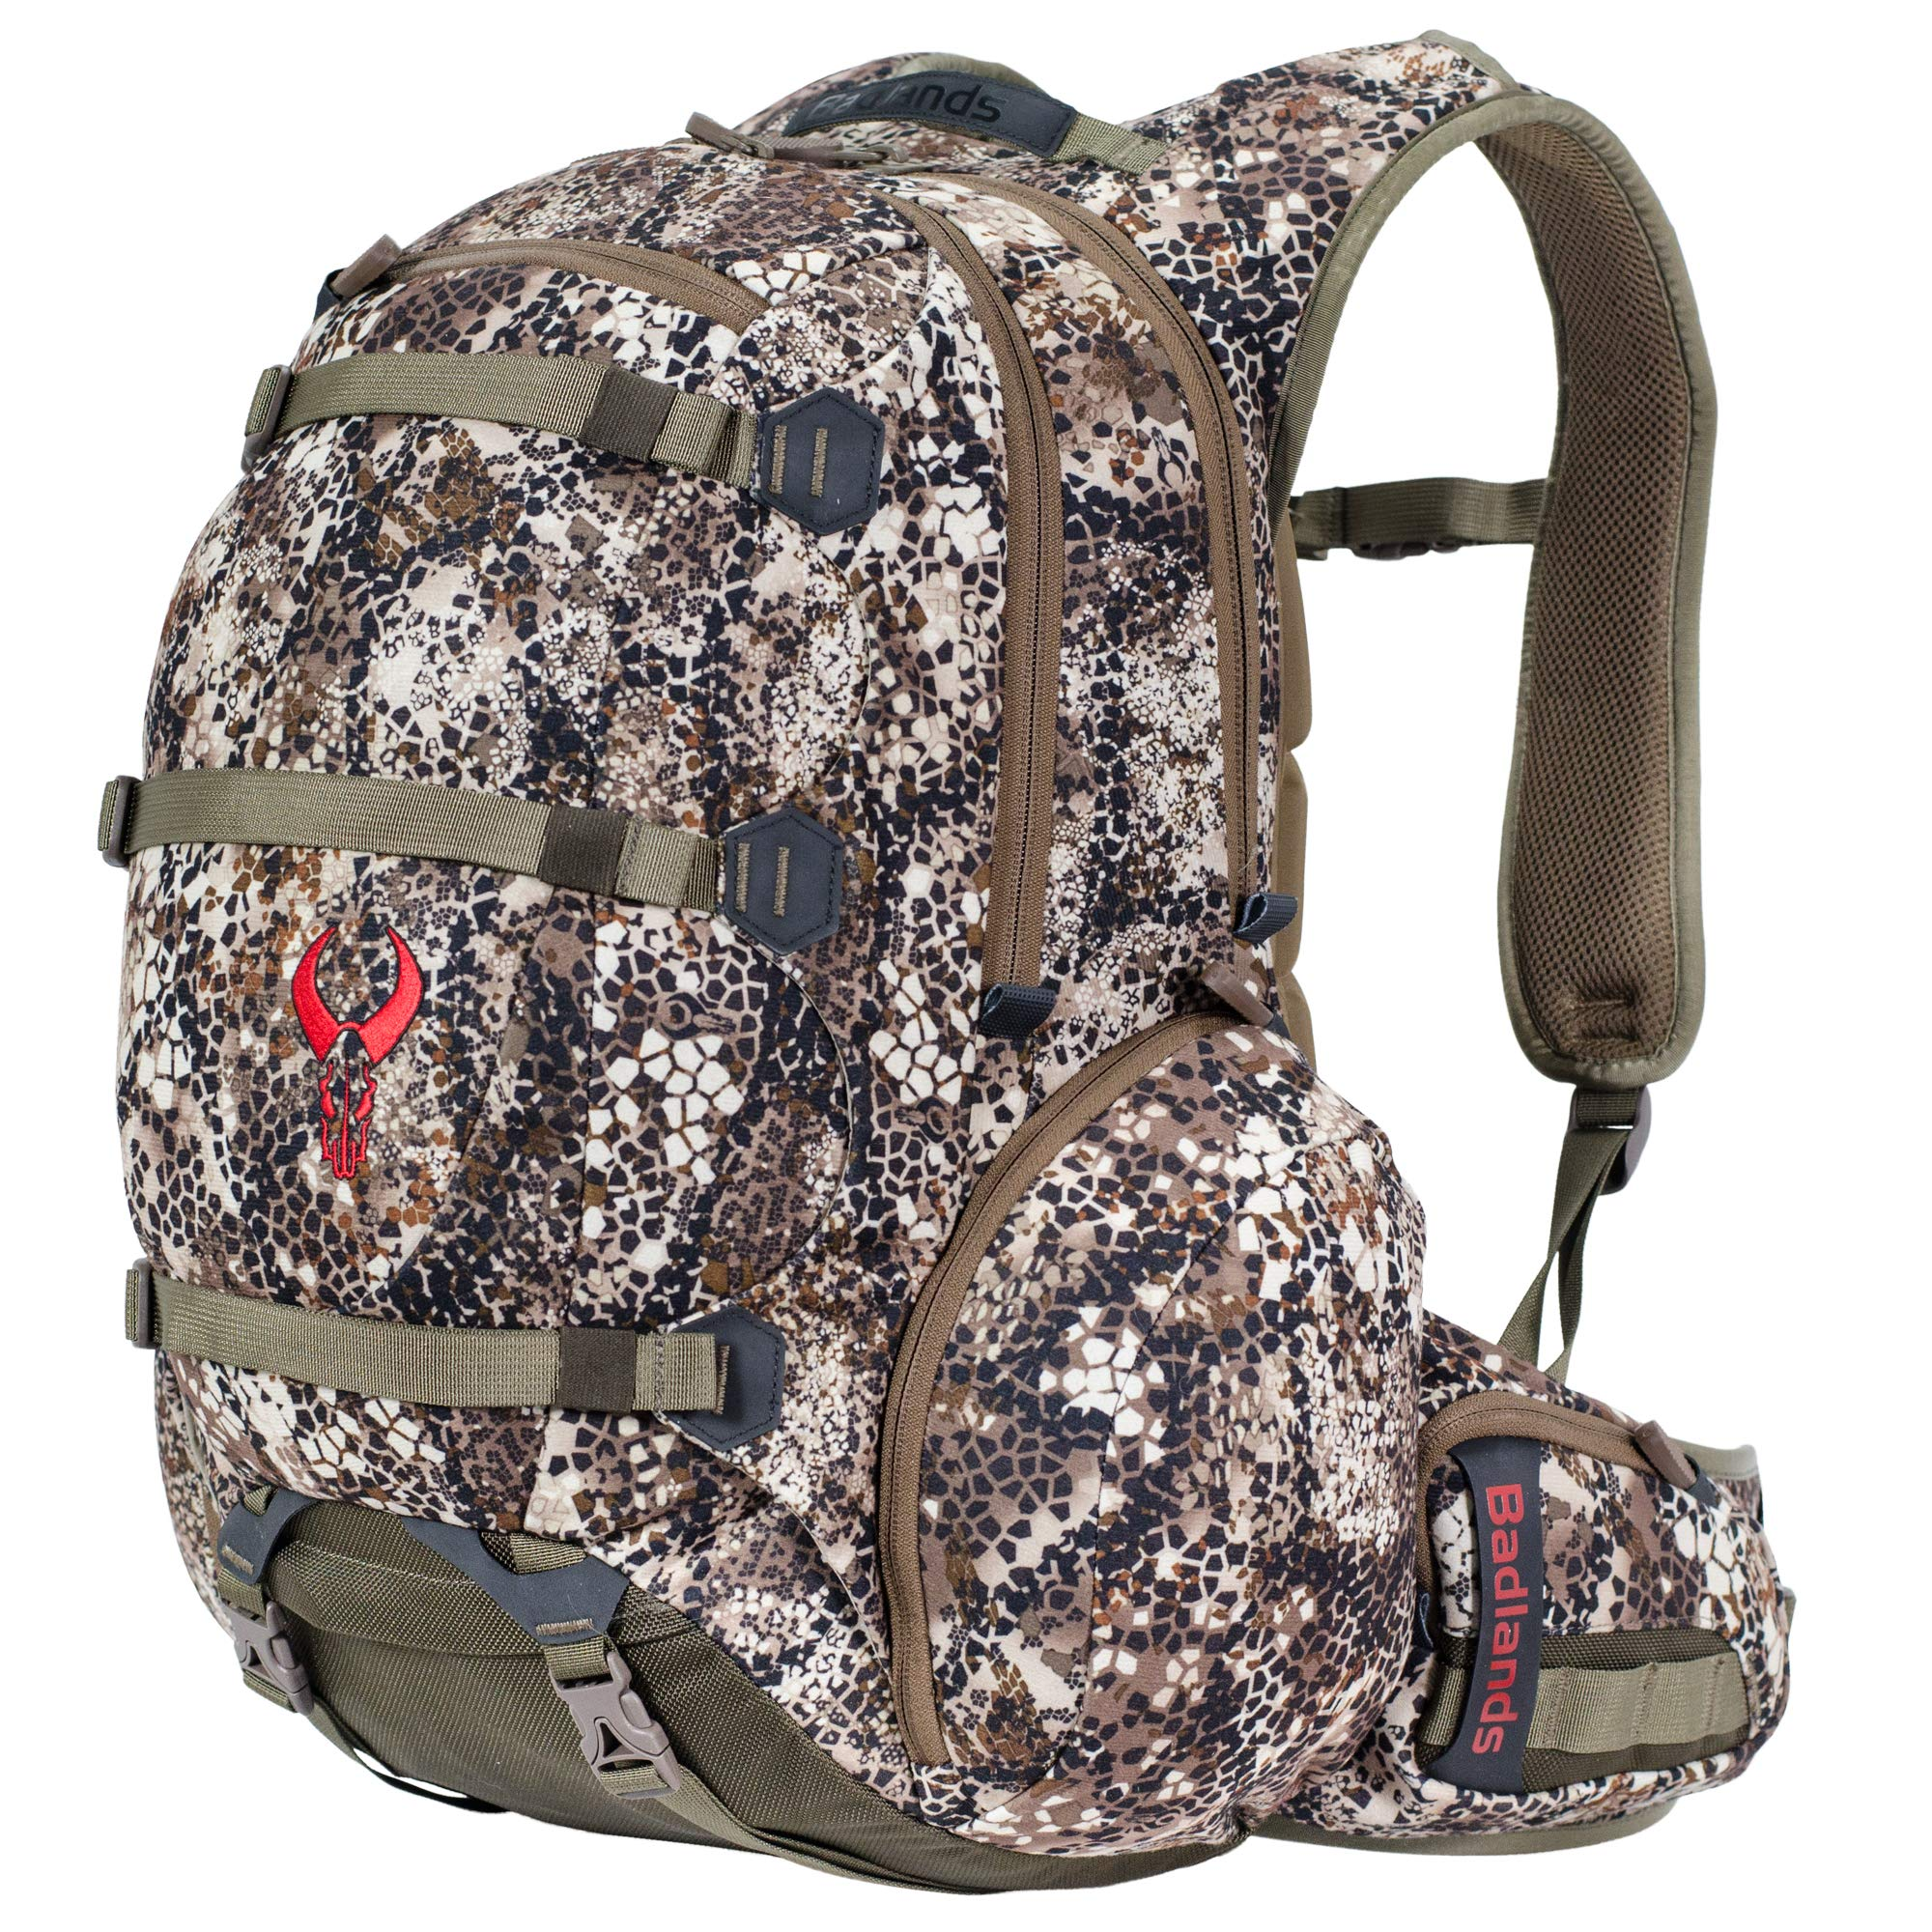 Badlands Superday Camouflage Hunting Backpack - Rifle and Pistol Compatible, Approach FX by Badlands